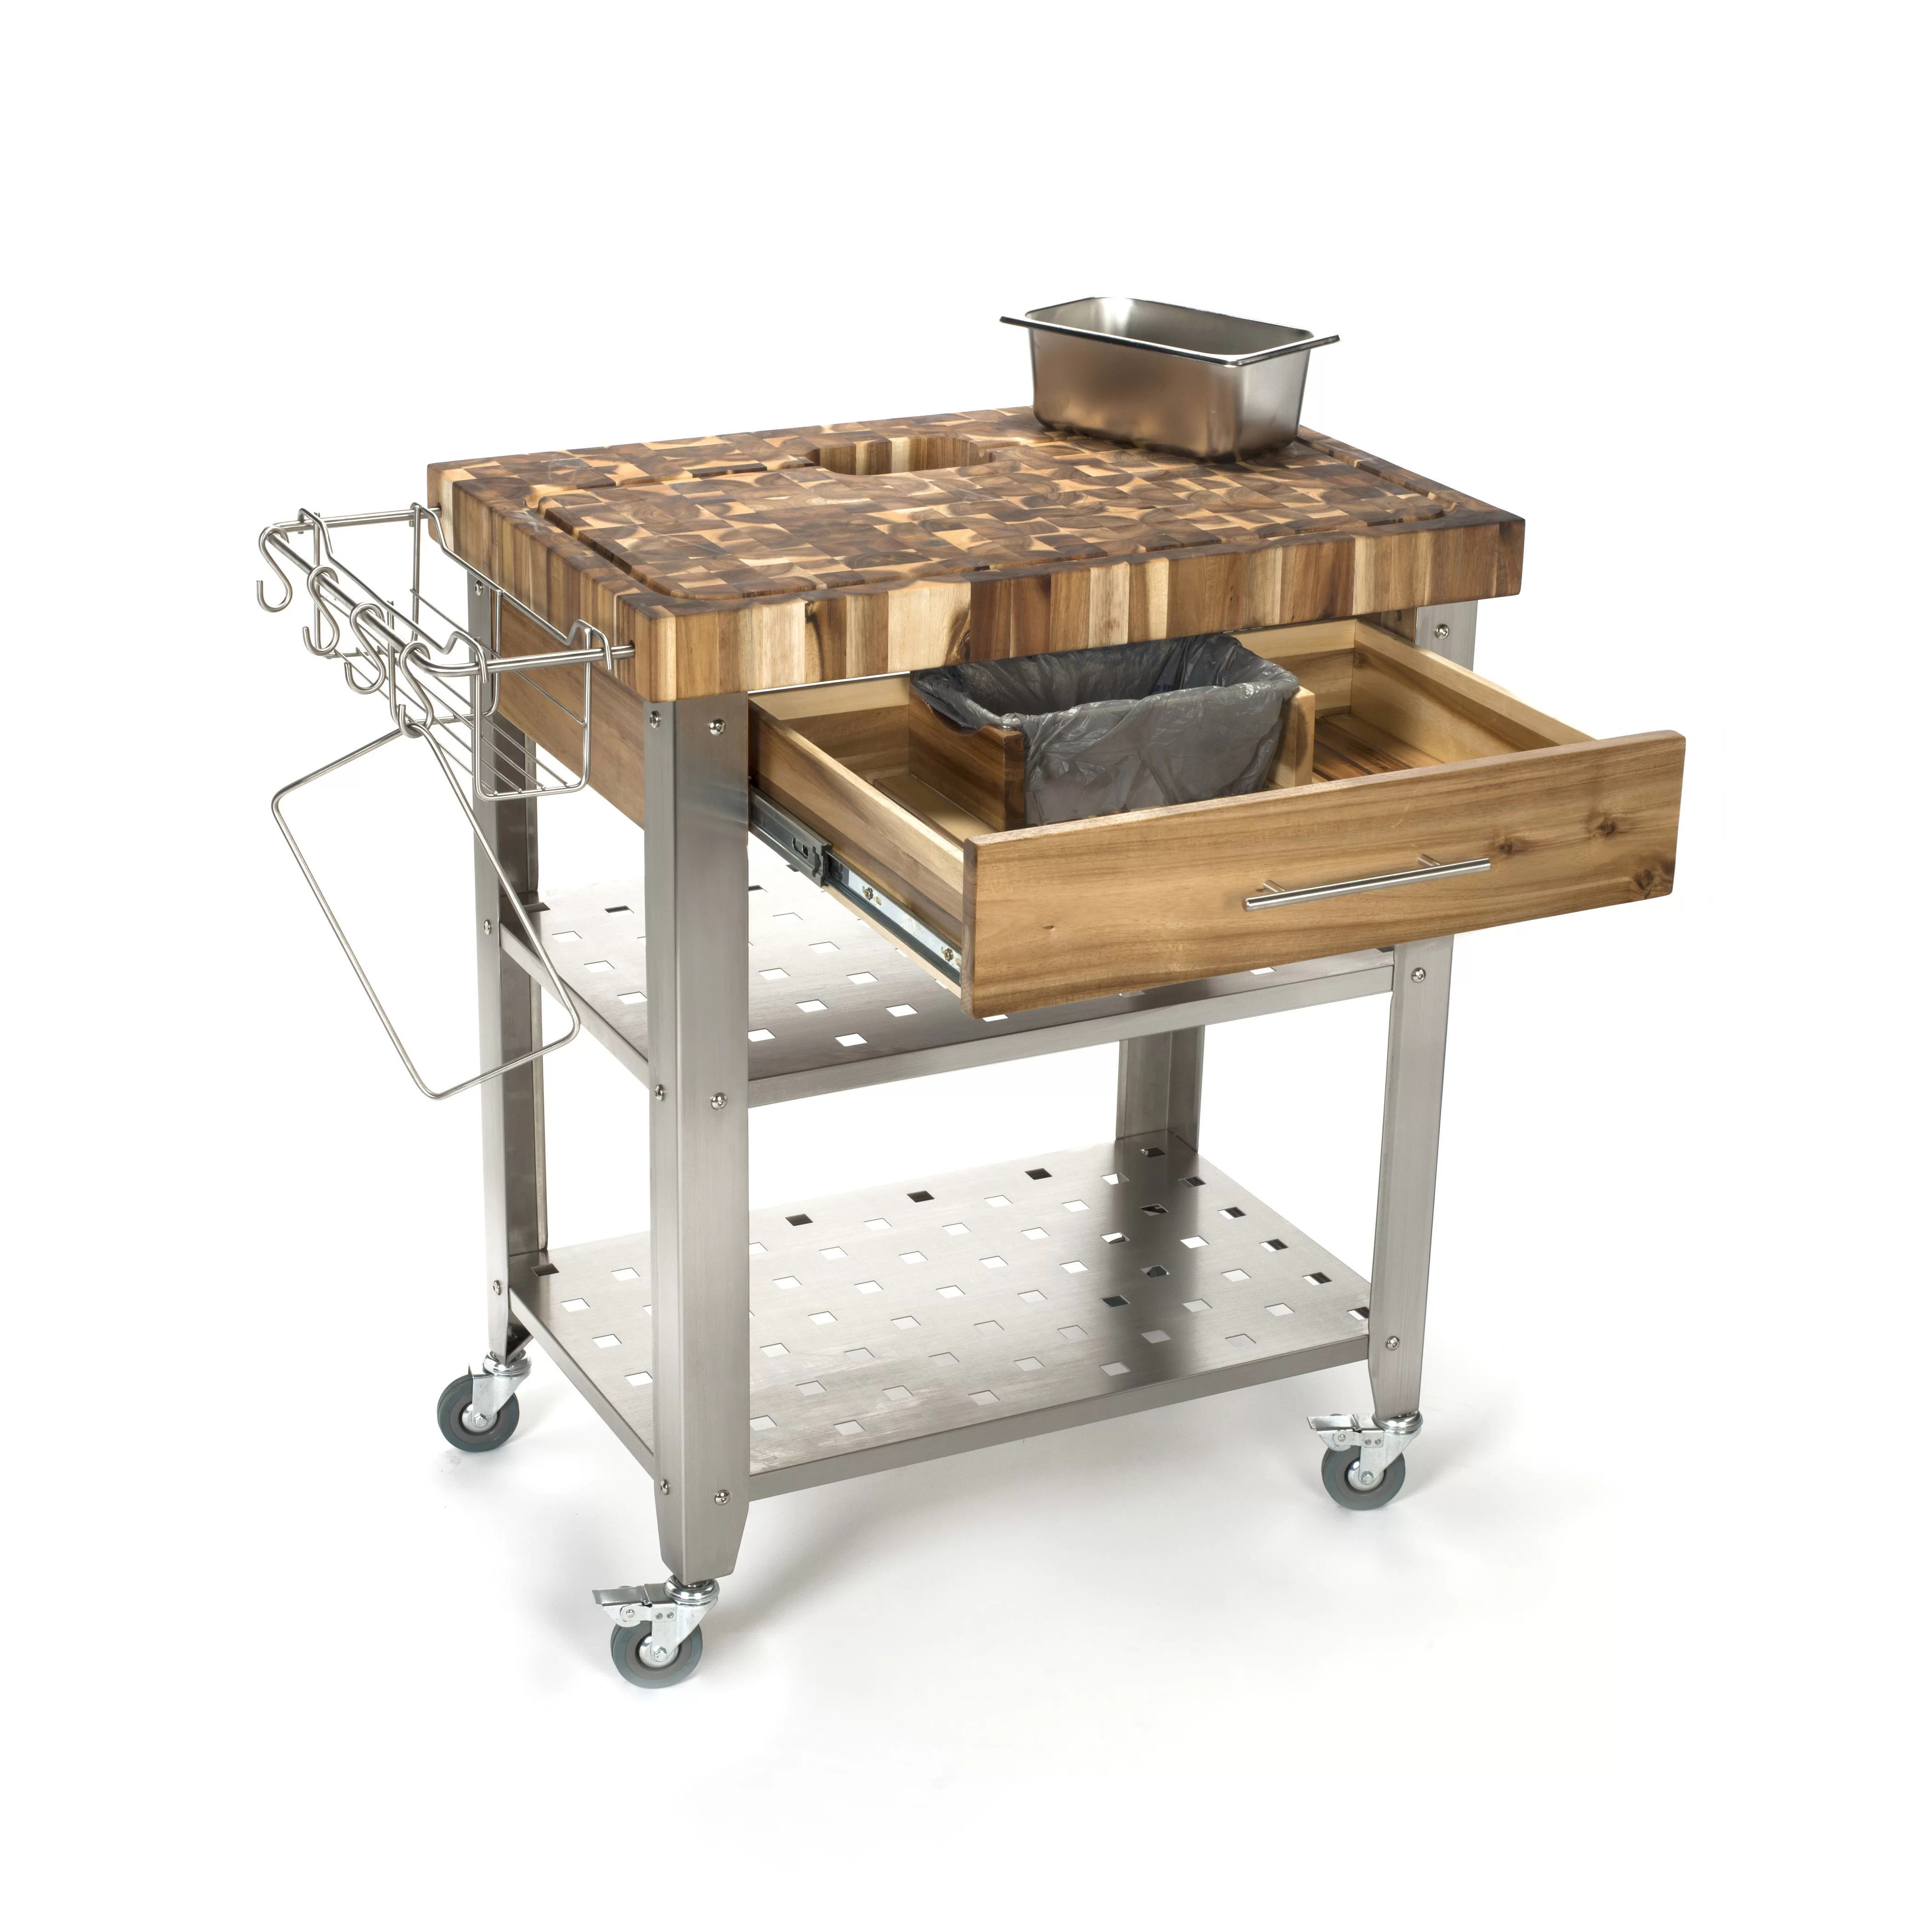 chris and kitchen cart used appliances for sale island with butcher block top